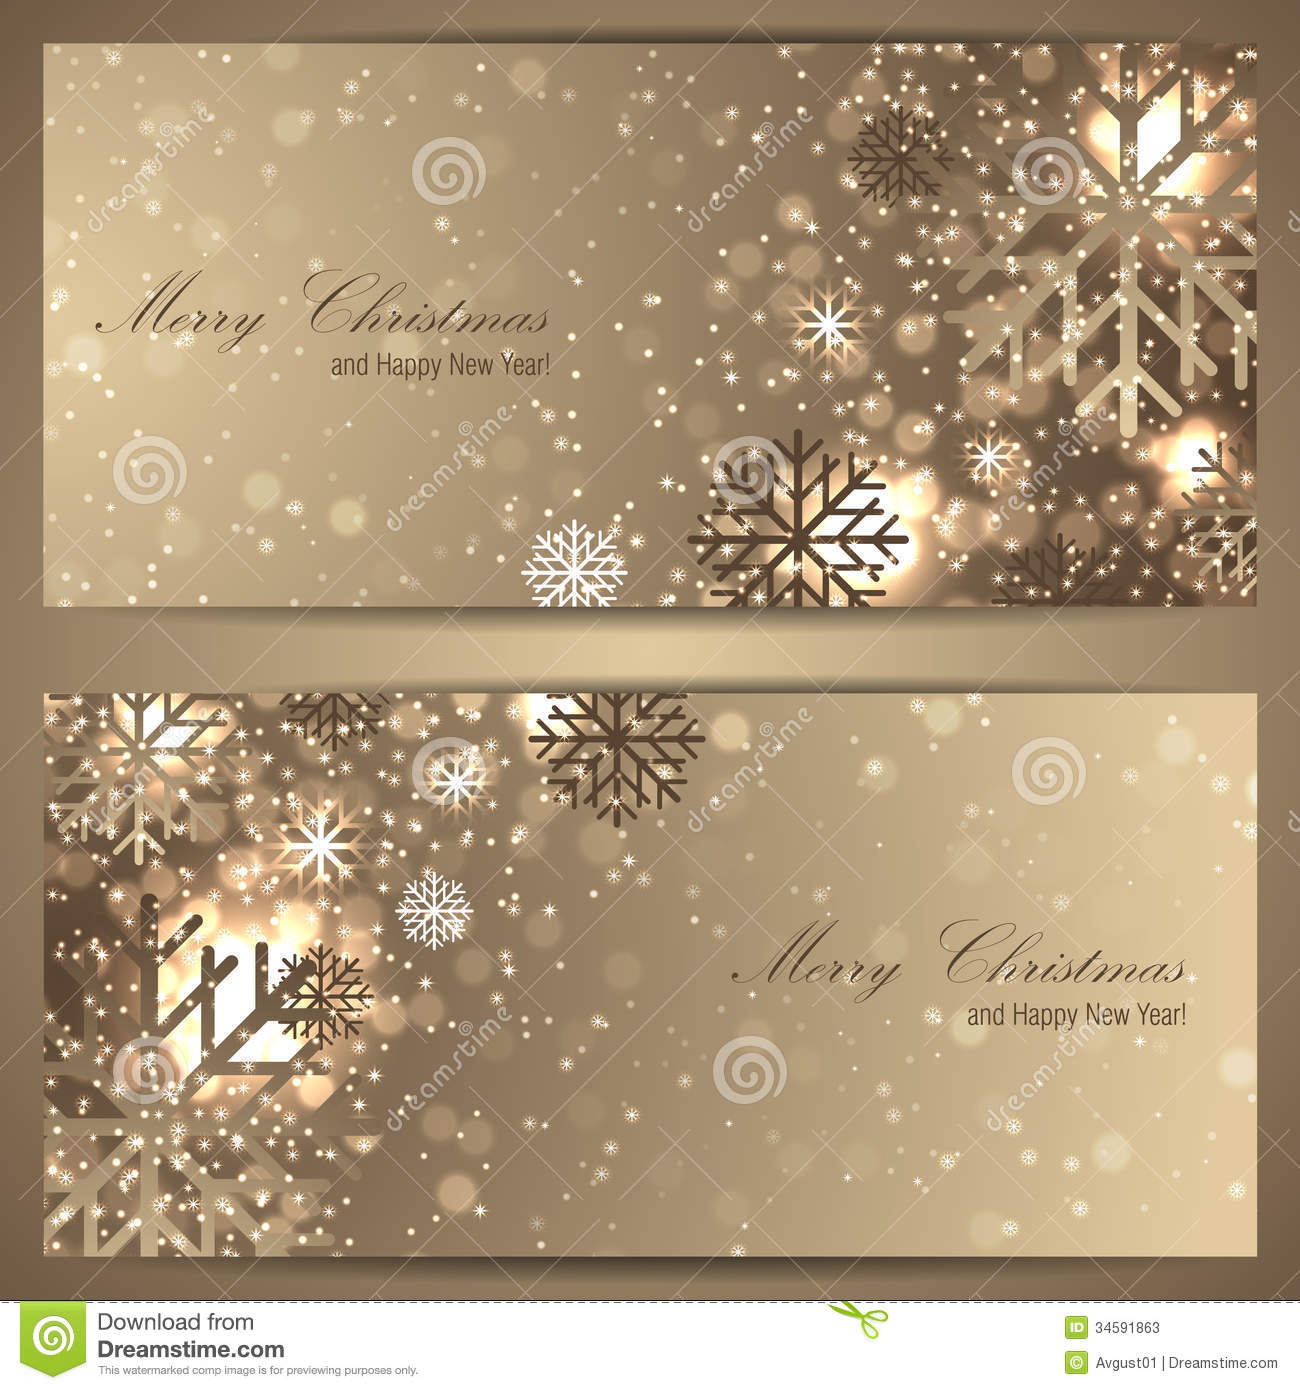 Classy Christmas Banners Free Ebook Banners